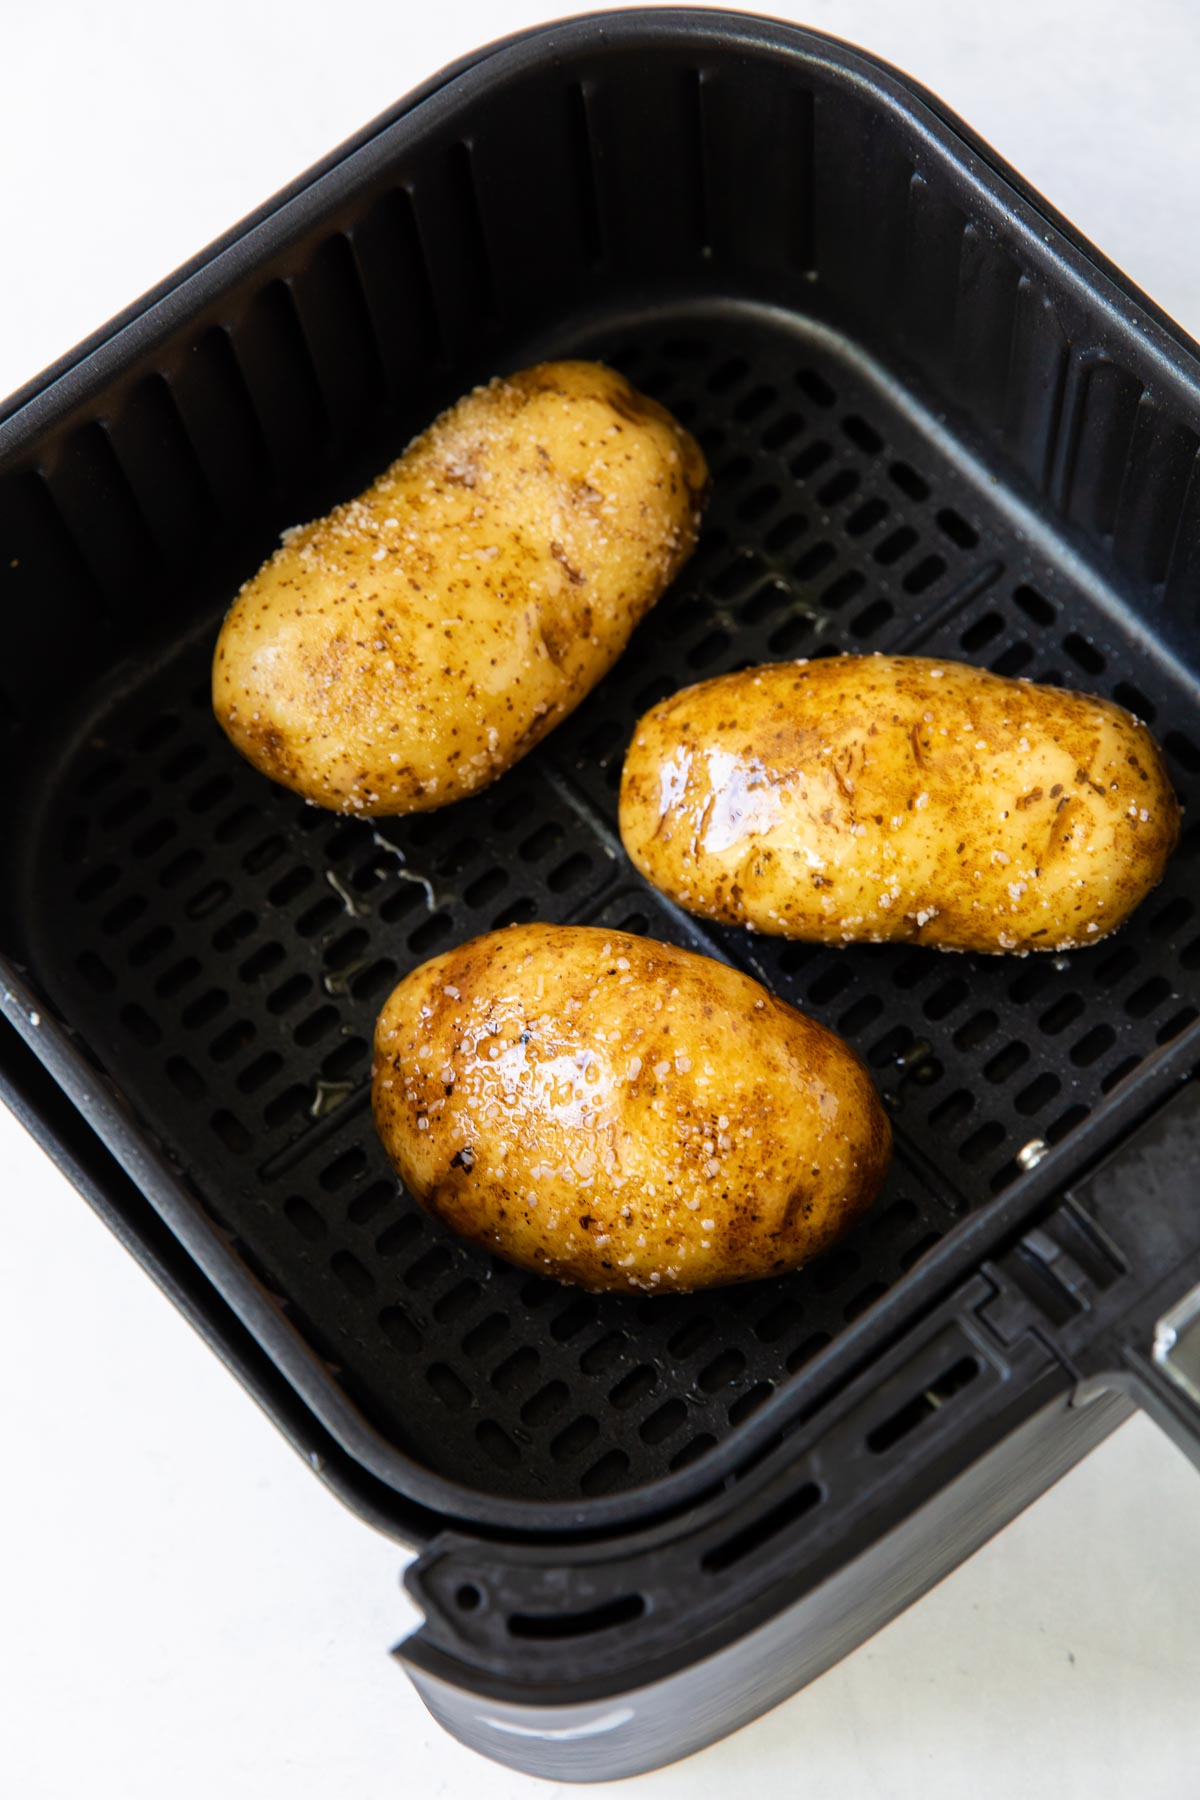 three russet potatoes rubbed with oil and salt in air fryer basket